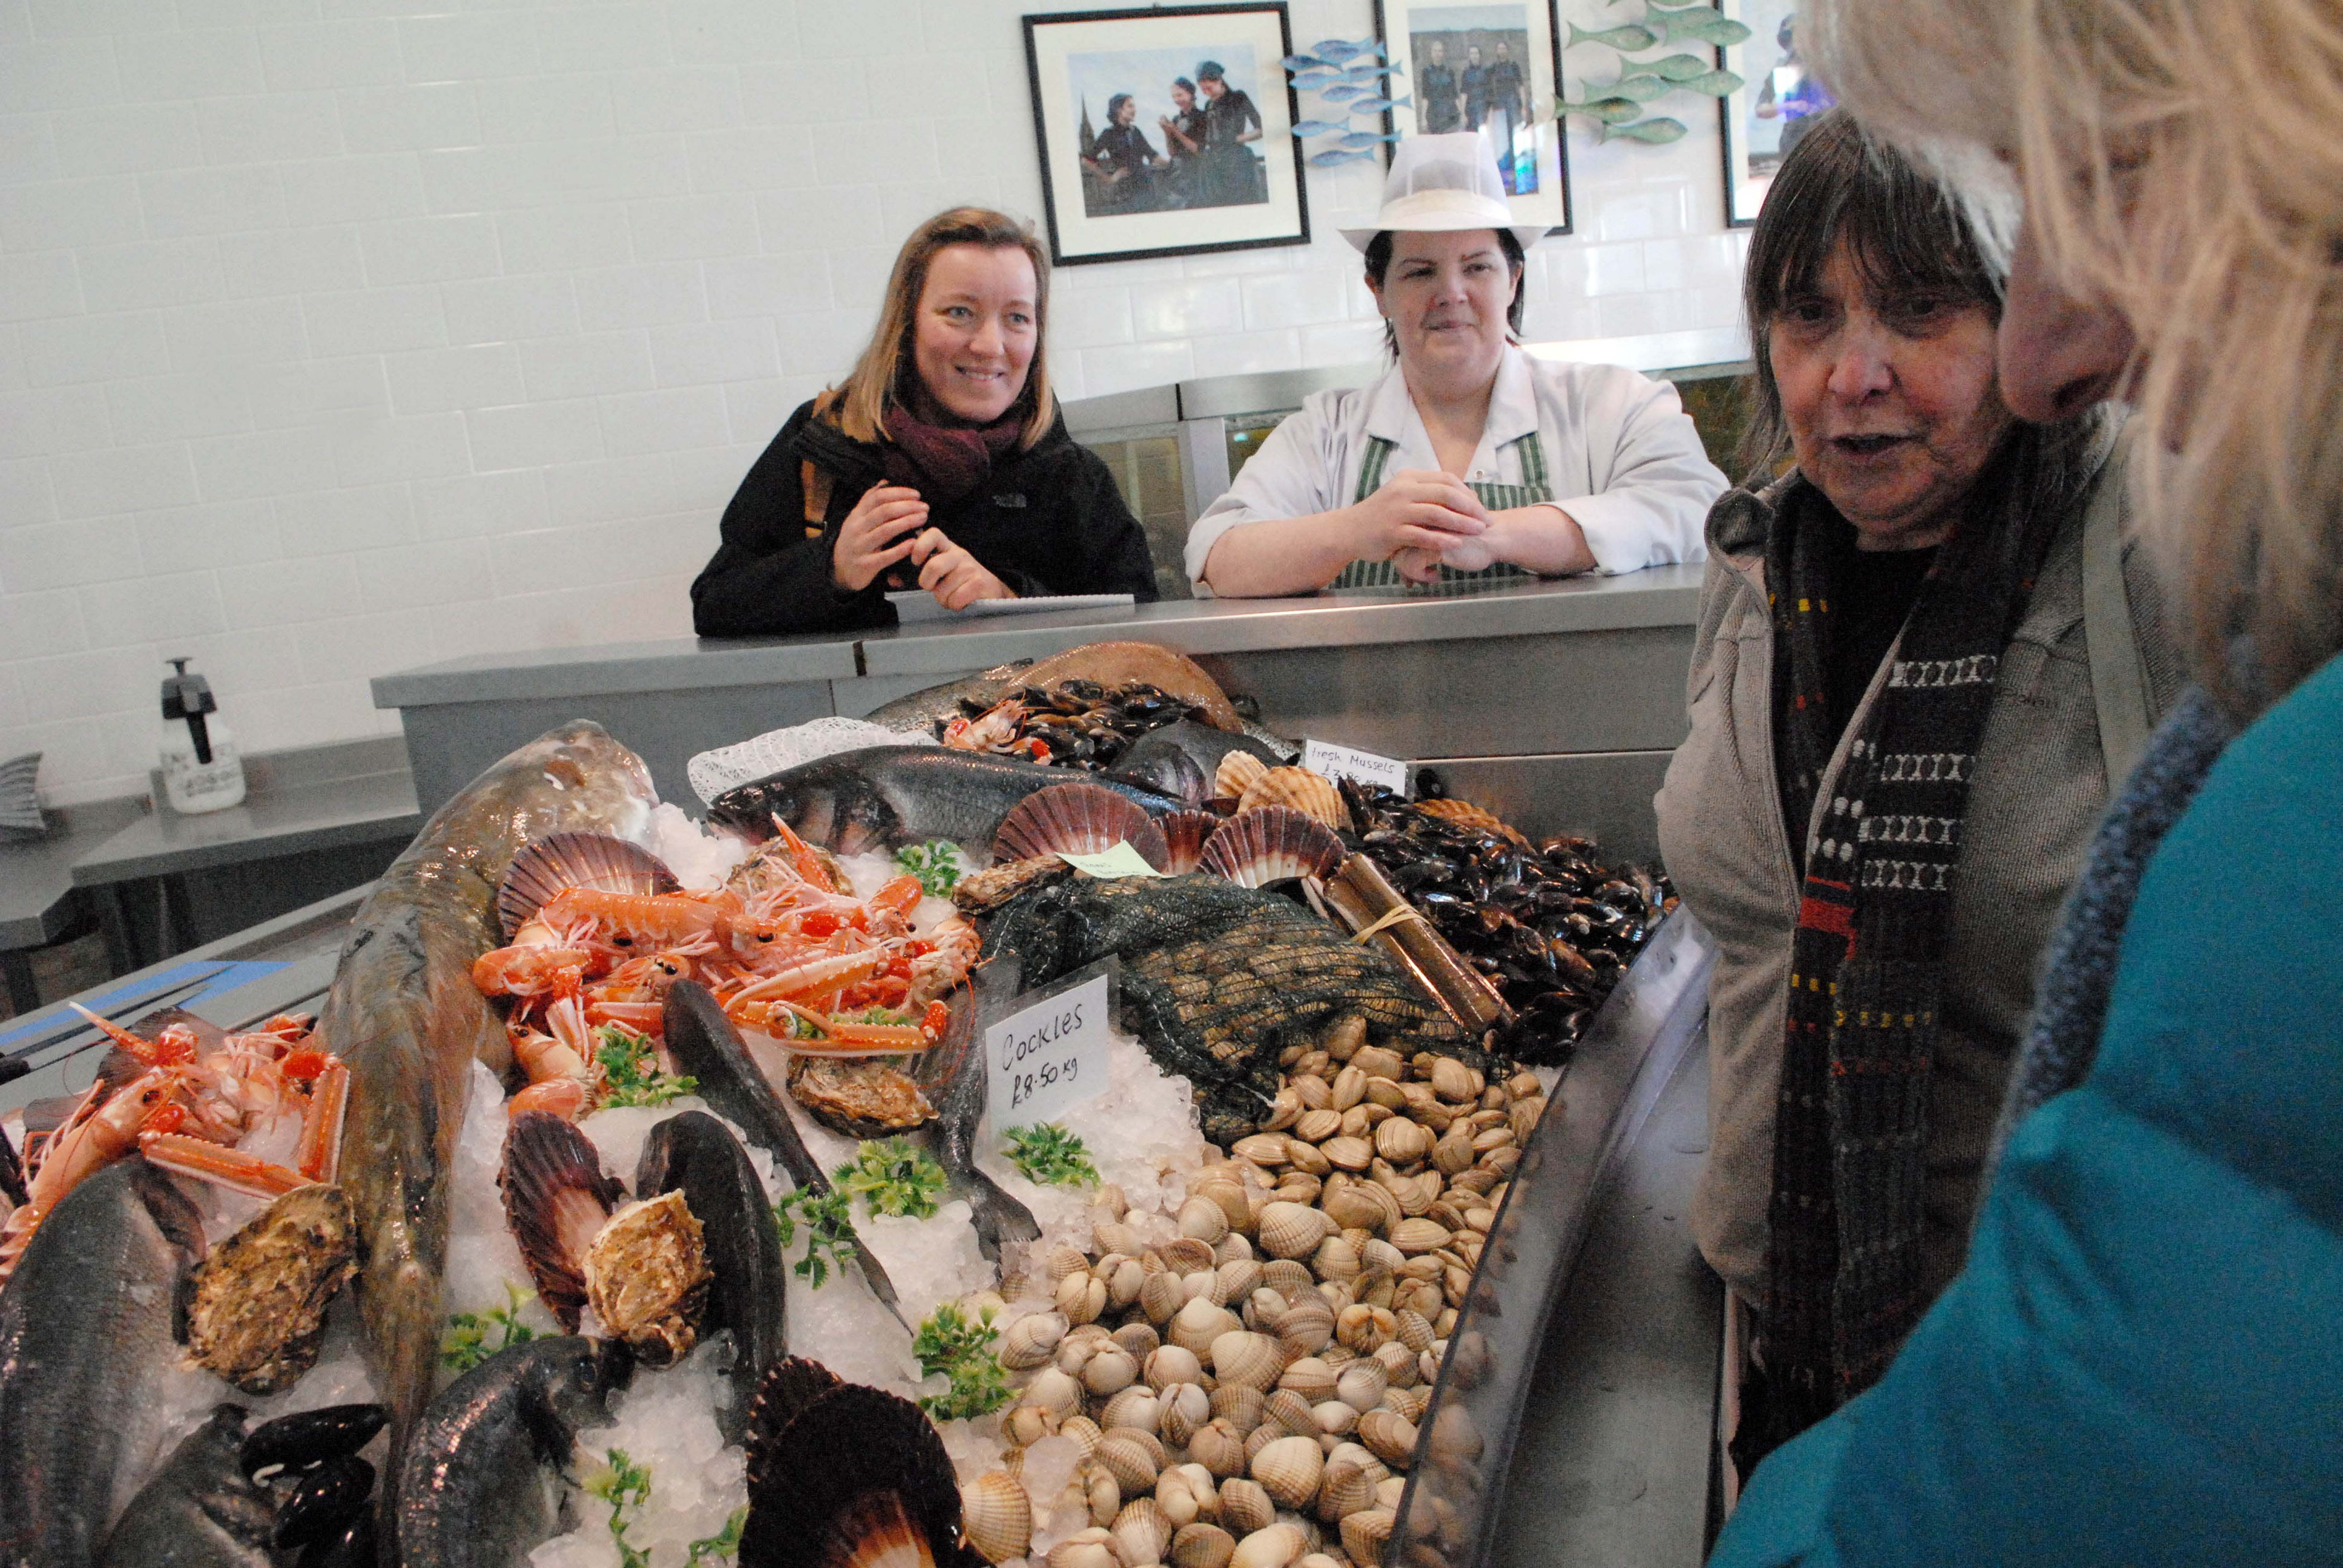 Trustee's got goody bag of kippers thanks to Welch's Fishmongers. Photo credit Sheila Masson